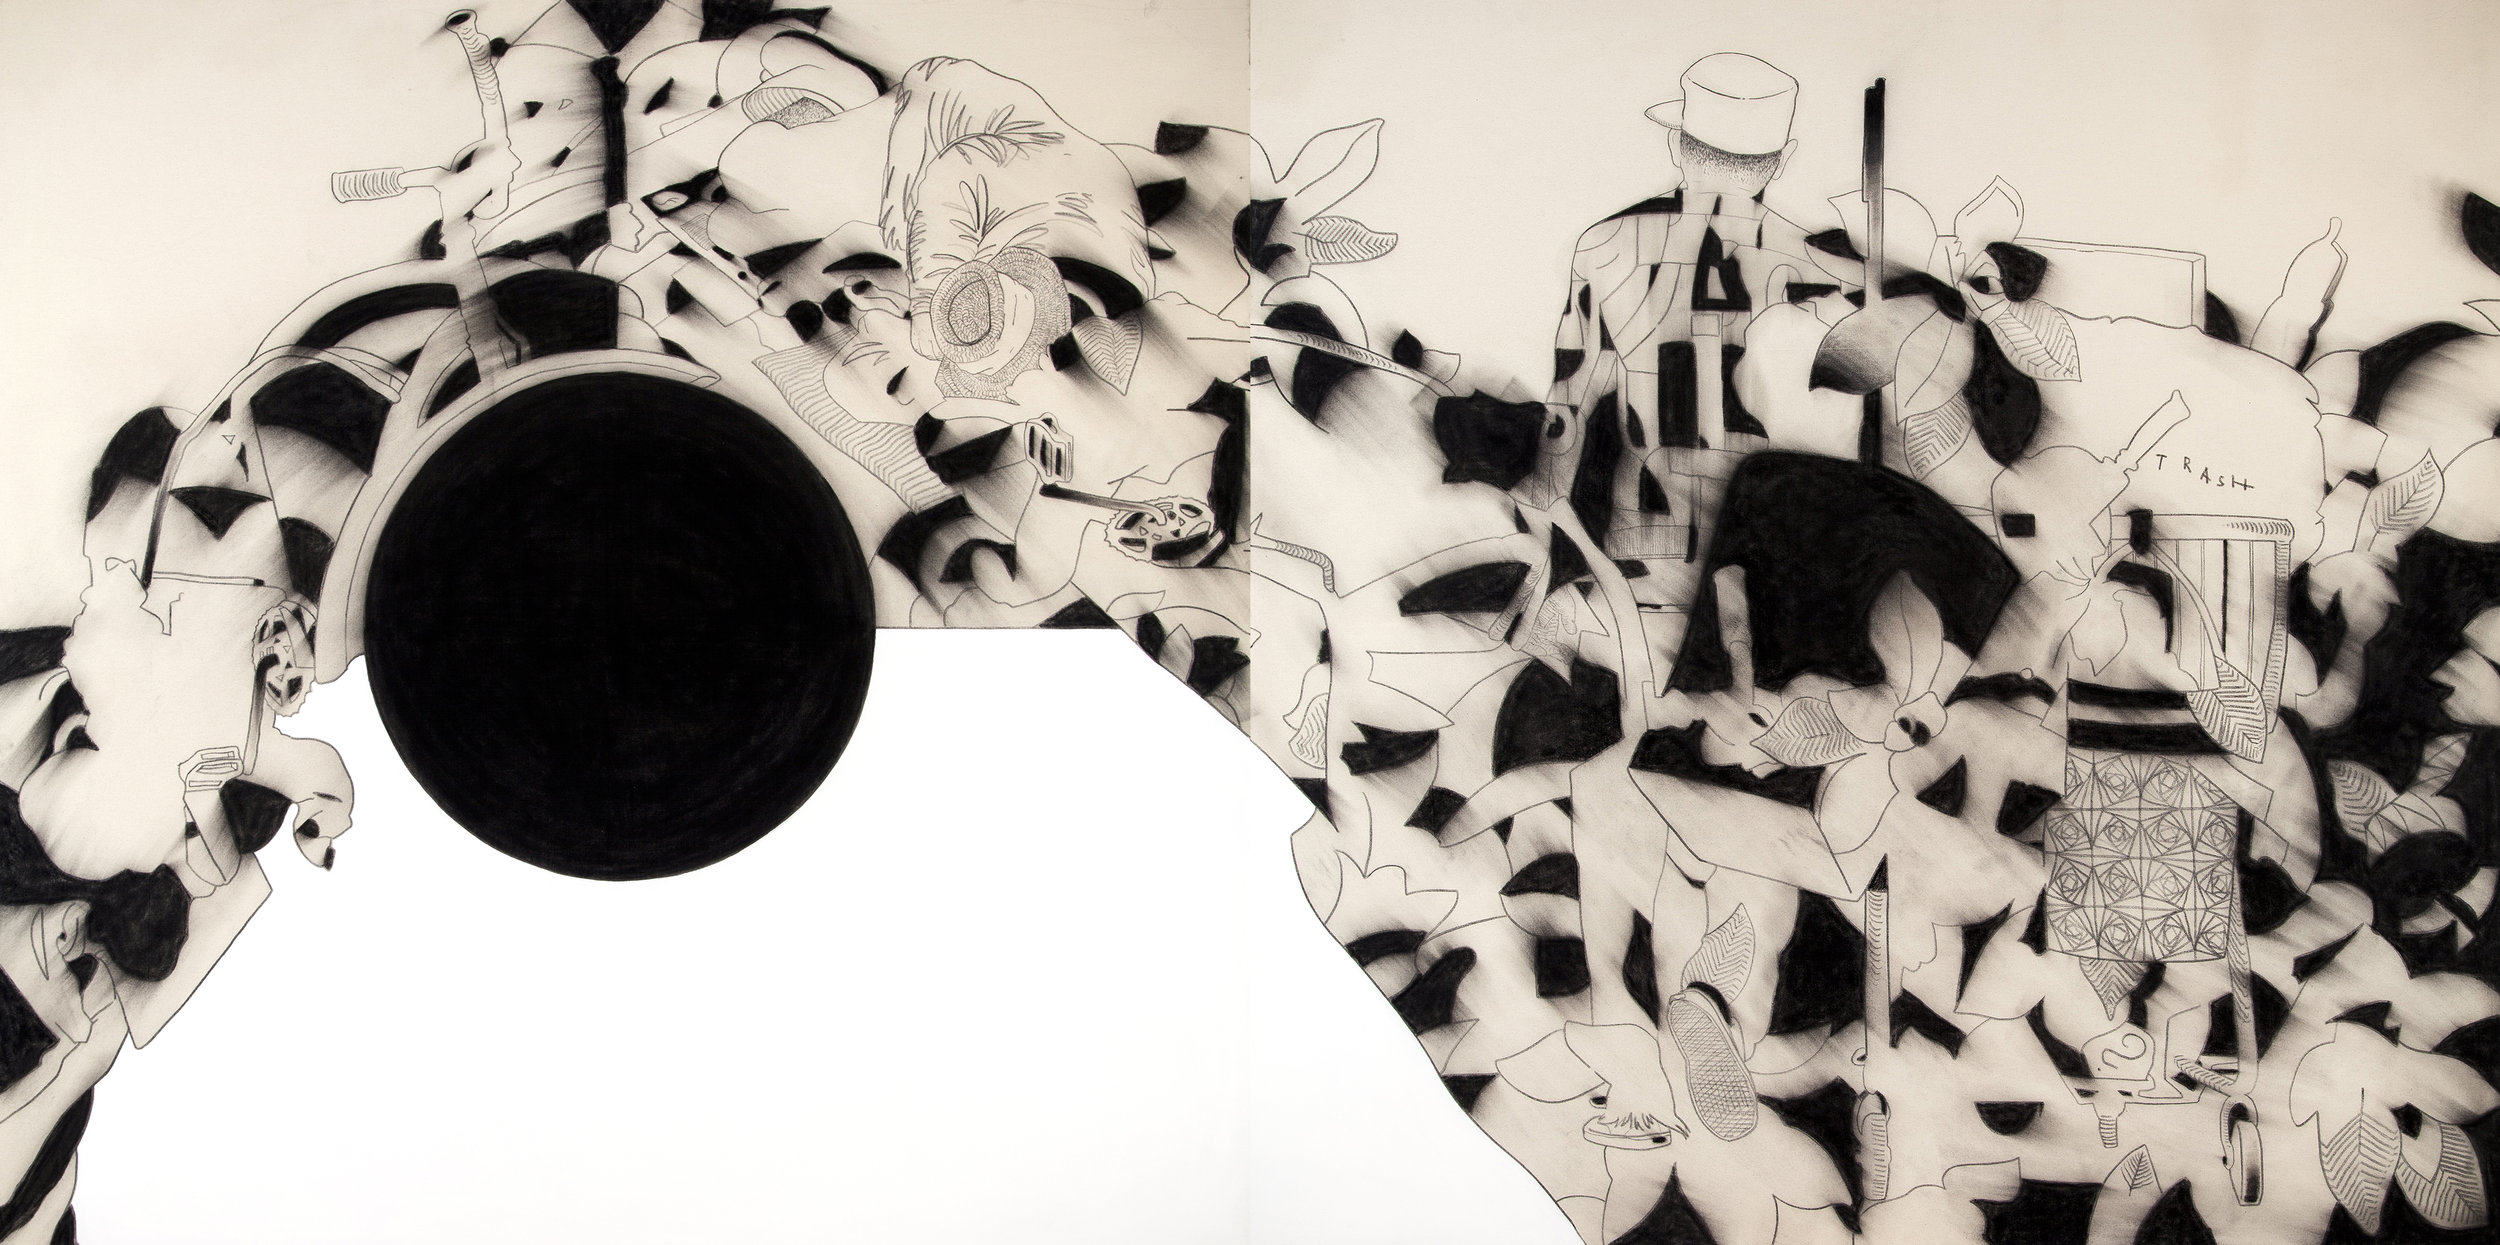 diptychon 200x400cm charcoal and gesso on canvas